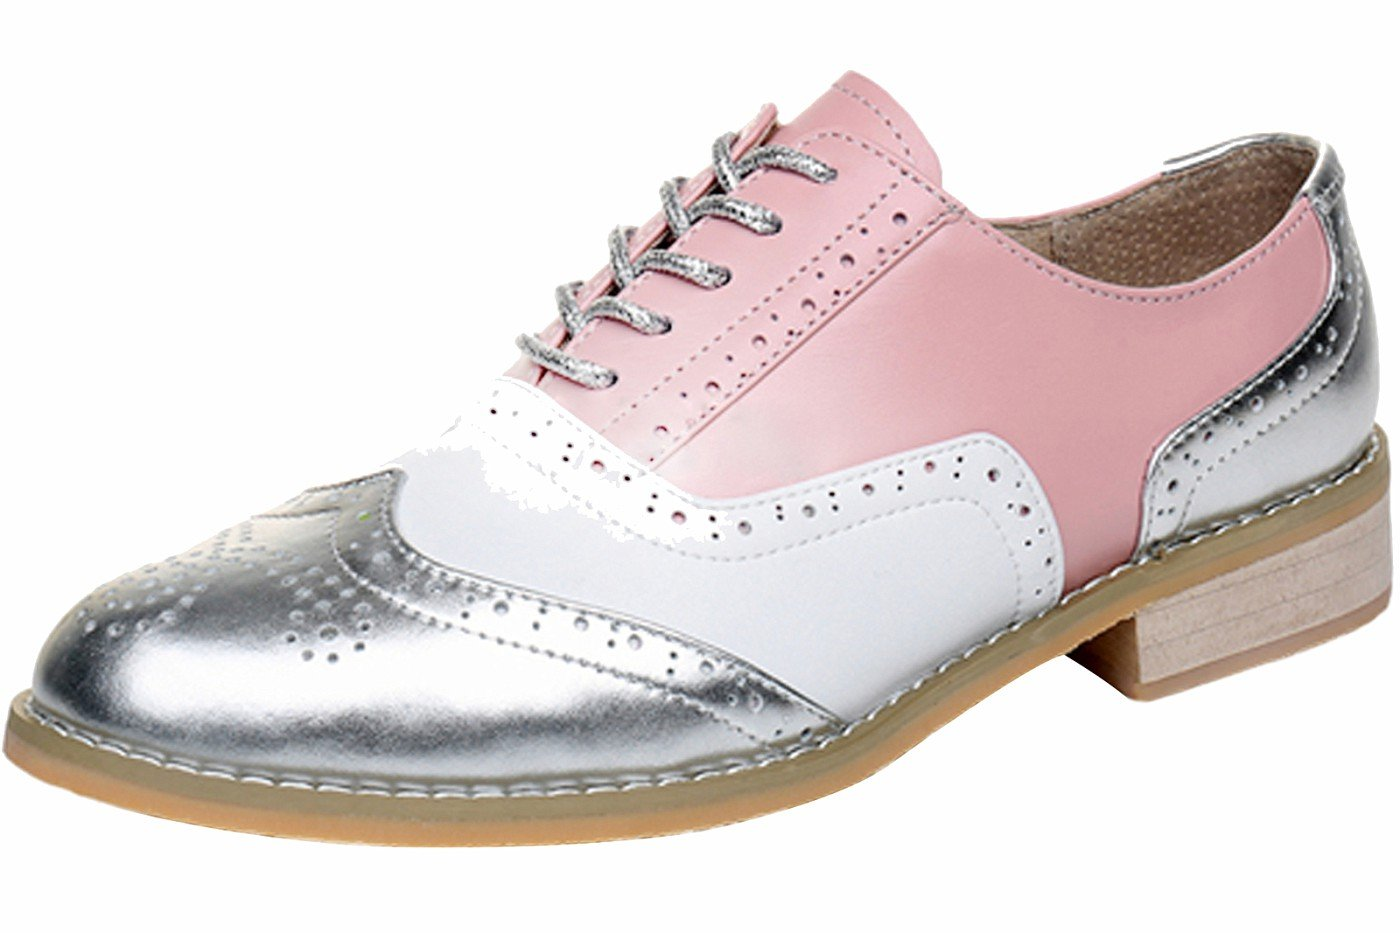 LaRosa Women's Leather Brogues Flat Oxford Shoes (8.5, Pink White Silver)